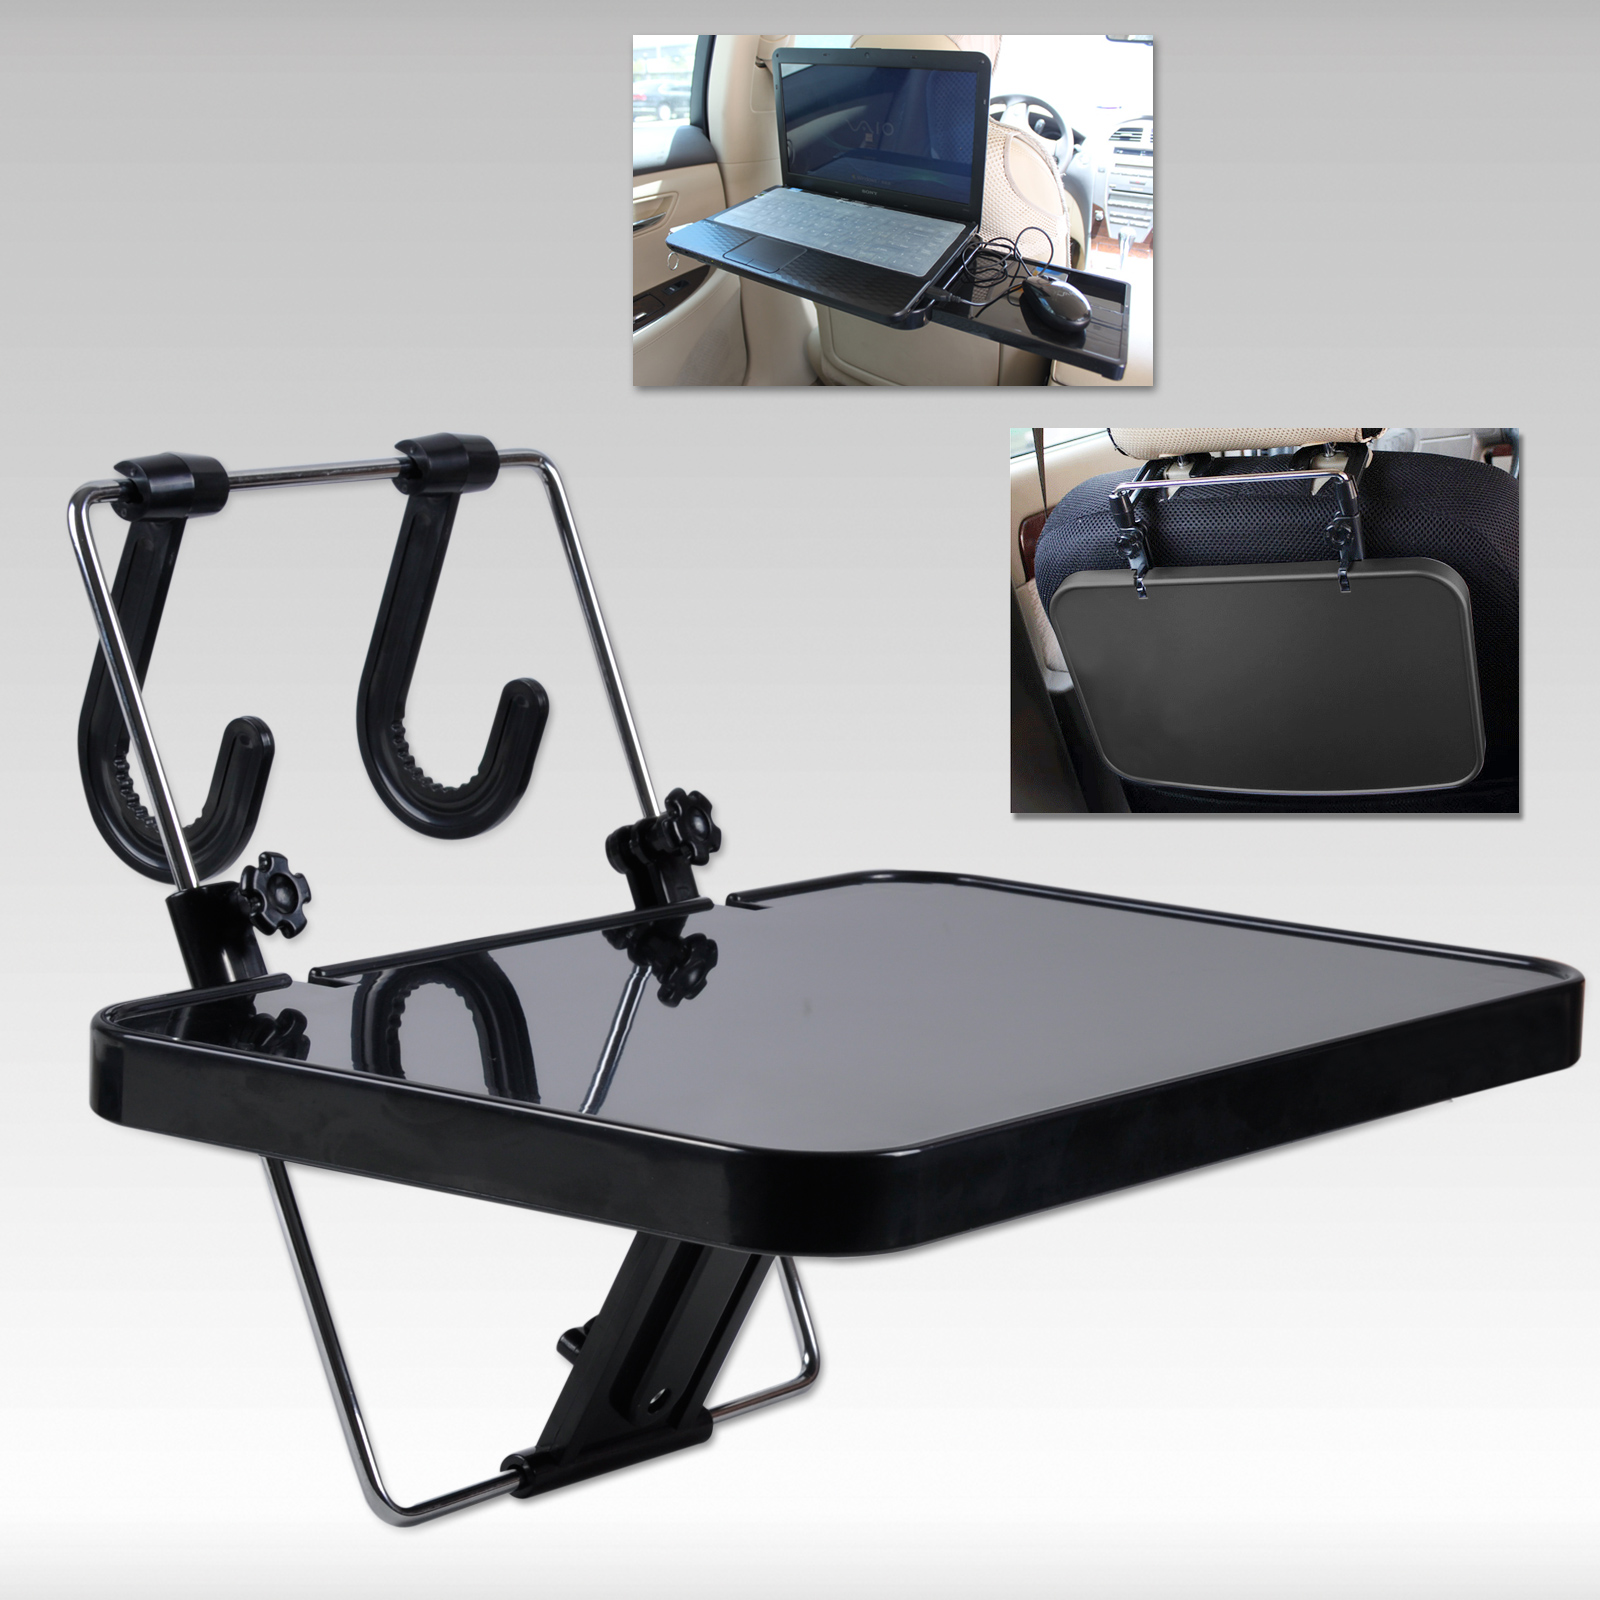 Car Seat Mount Tray Laptop Table Notebook Desk Food Table